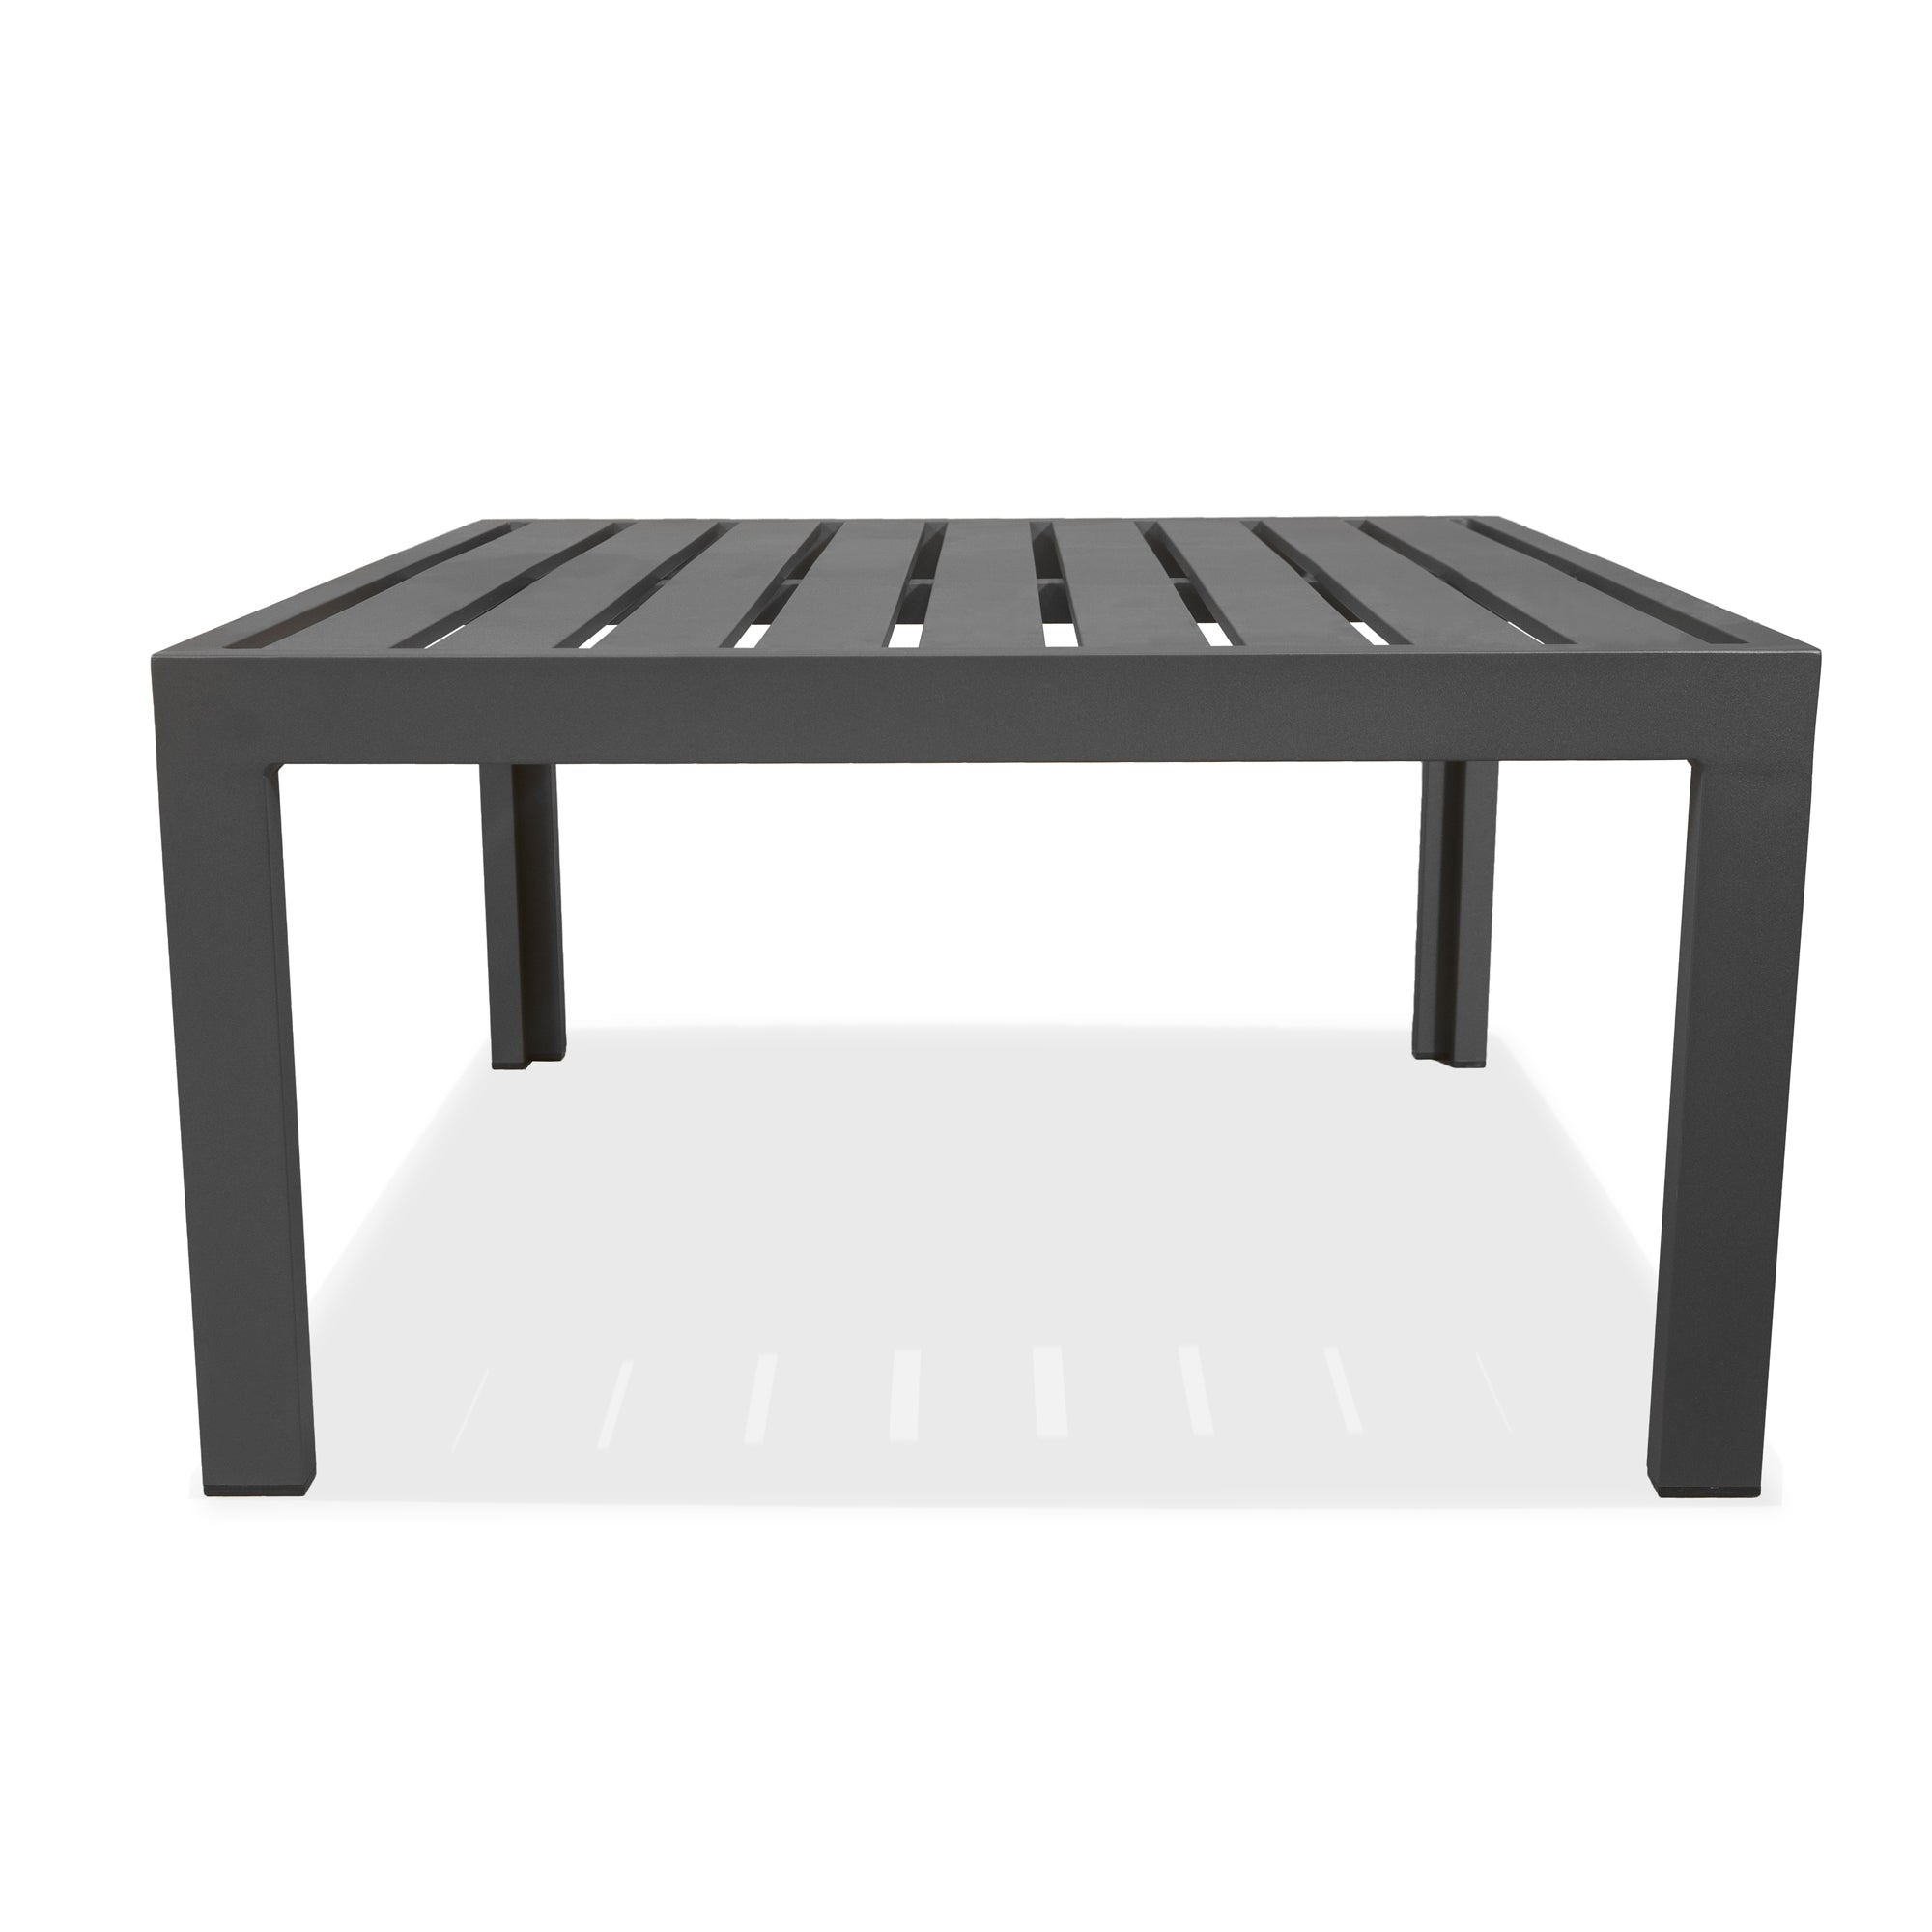 Evette Outdoor Coffee Table Anthracite